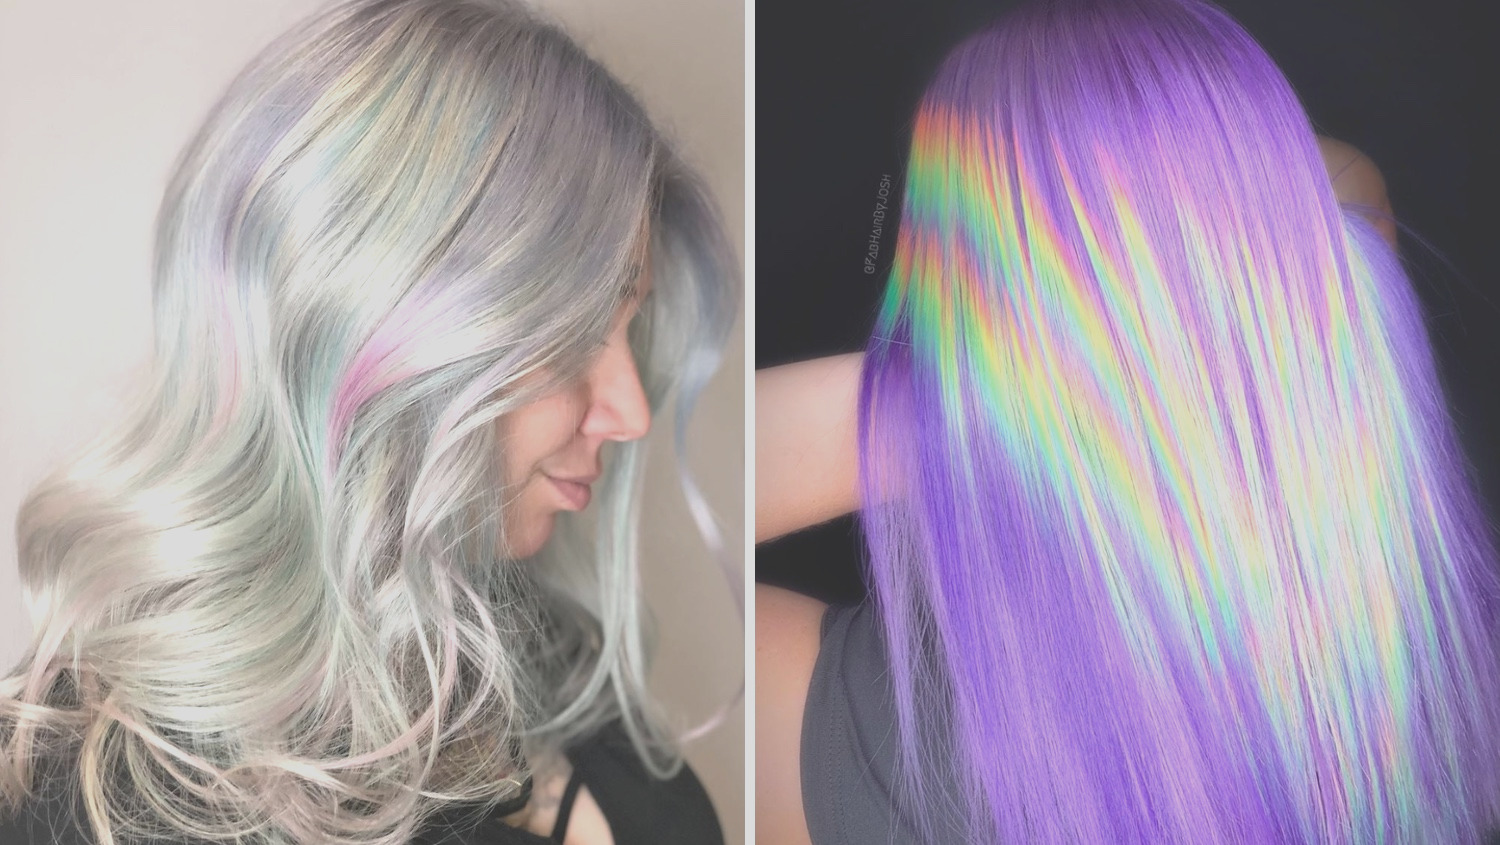 holographic hair is new color trend